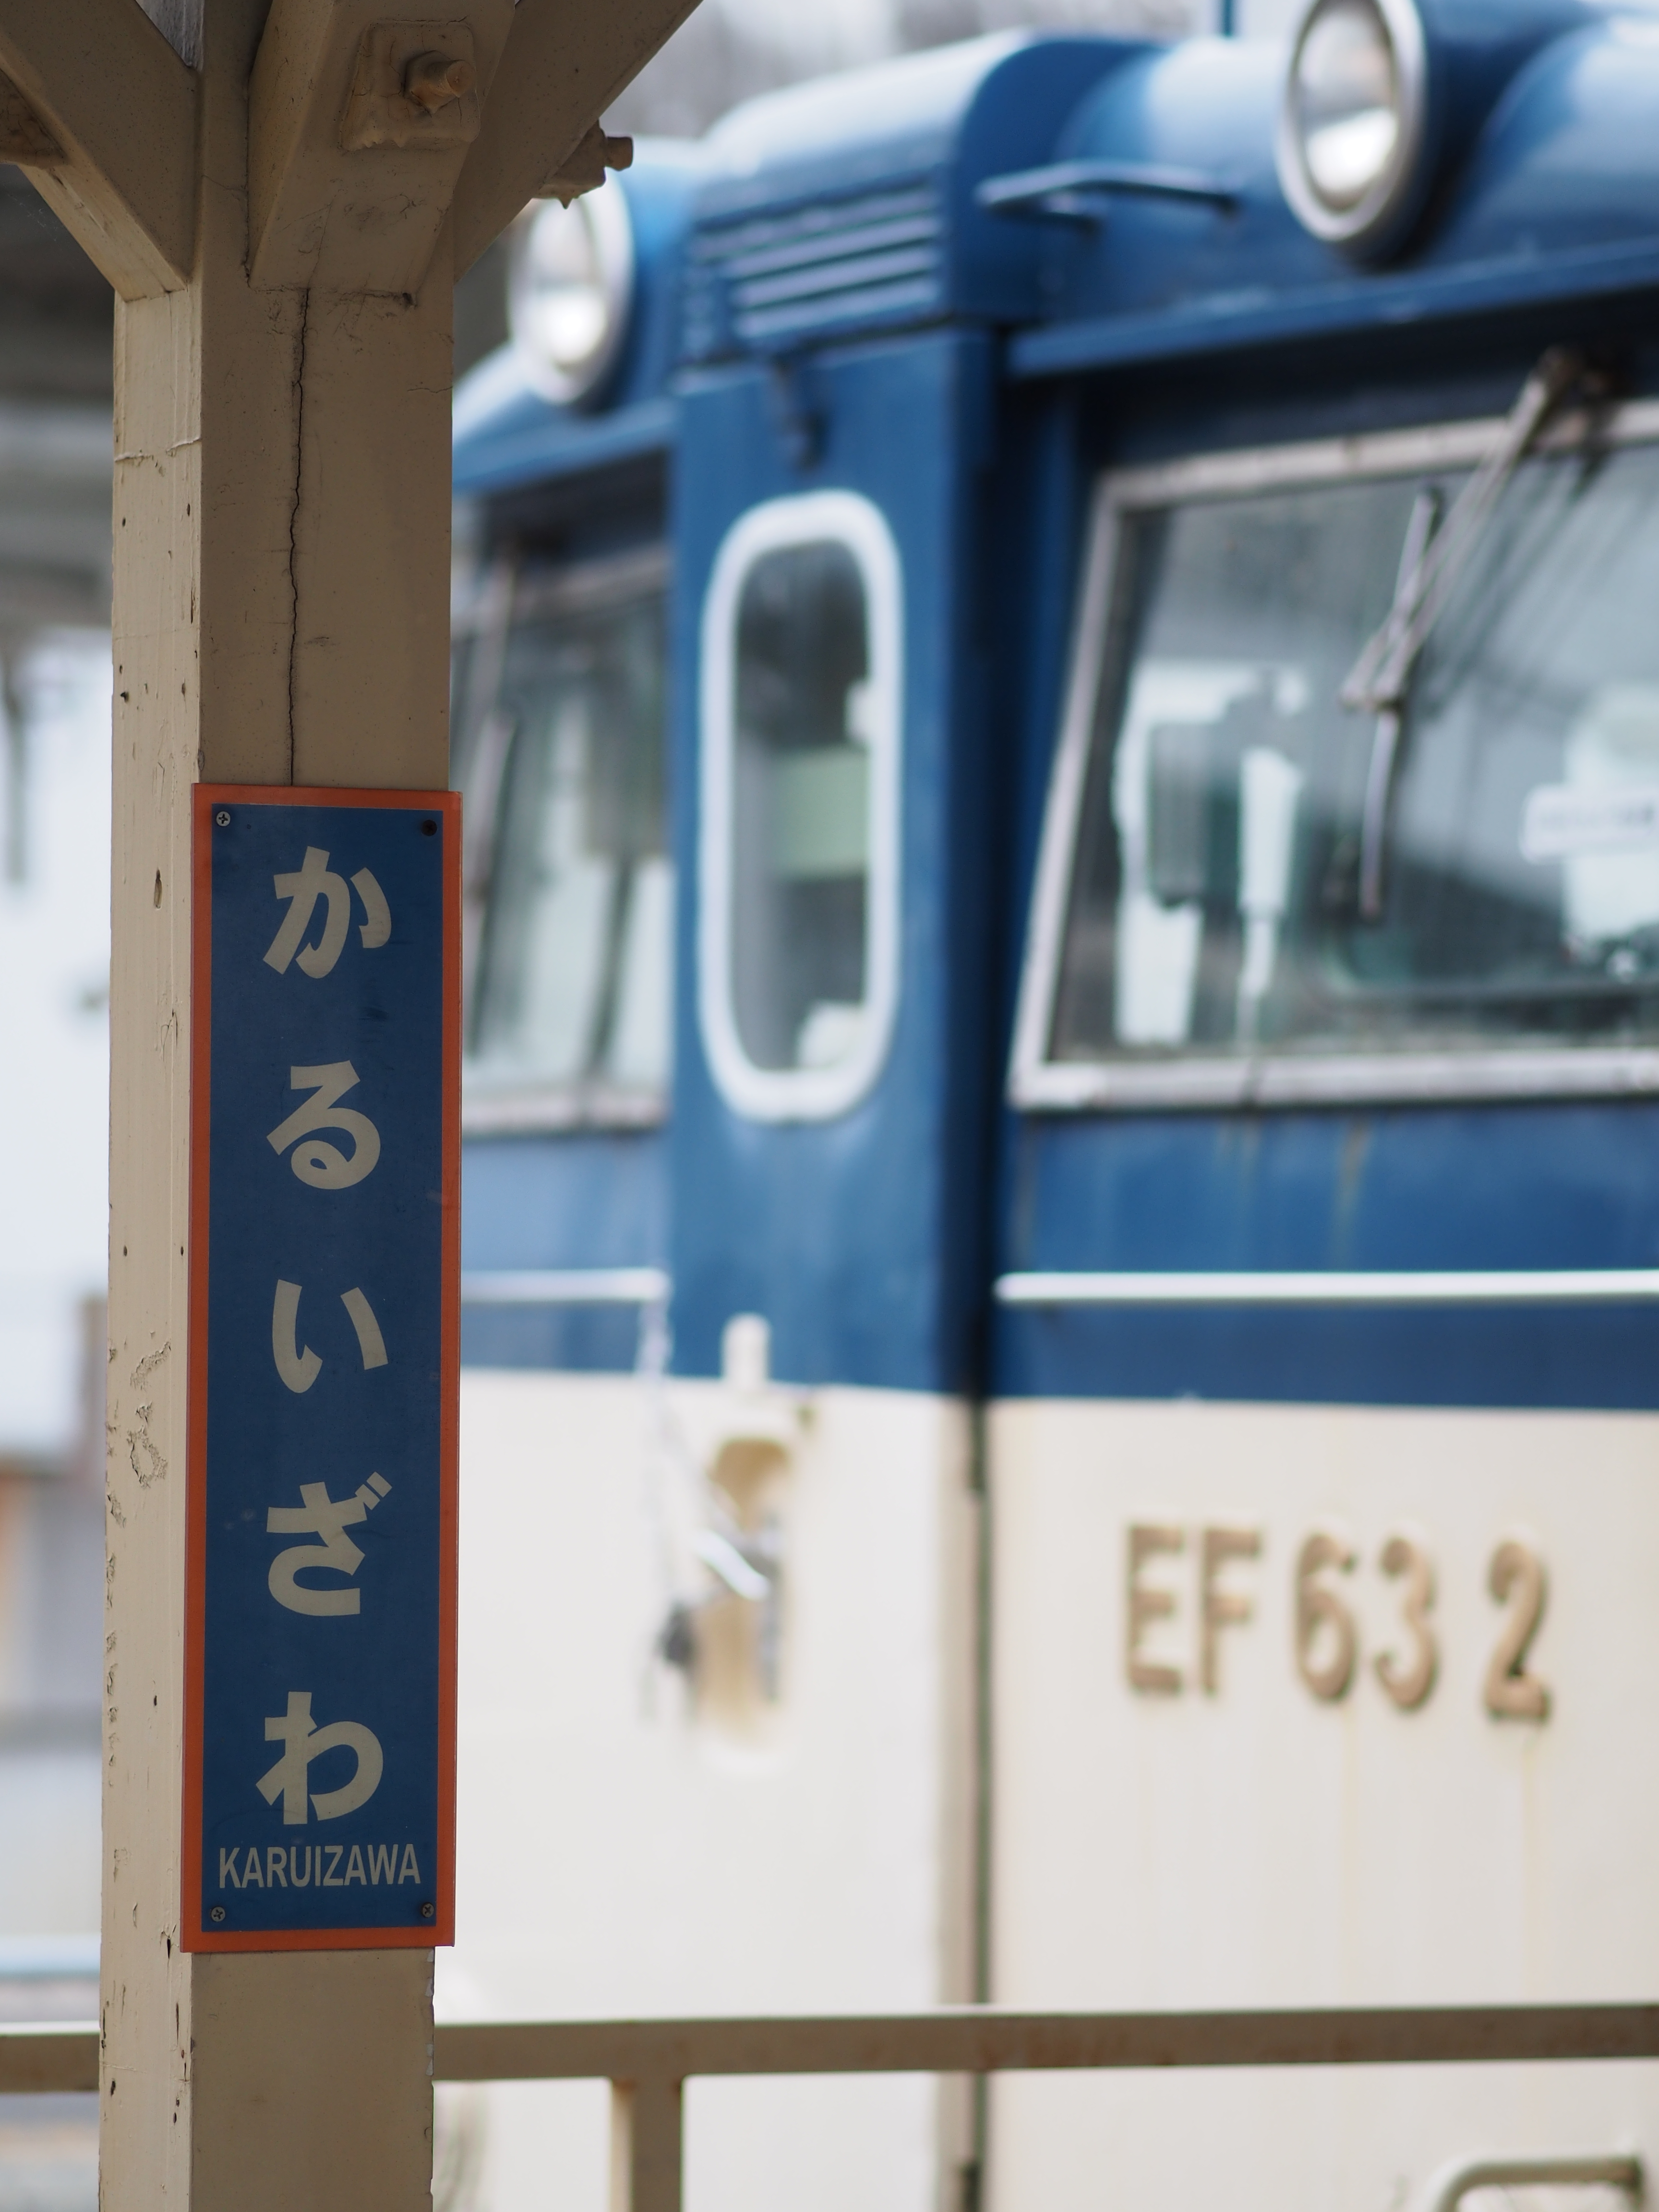 <b>E-M5 / M.ZUIKO DIGITAL ED 75mm F1.8 / 約6.0MB / 3,456×4,608 / 1/1,600秒 / F1.8 / +0.7EV / ISO200 / 75mm</b>